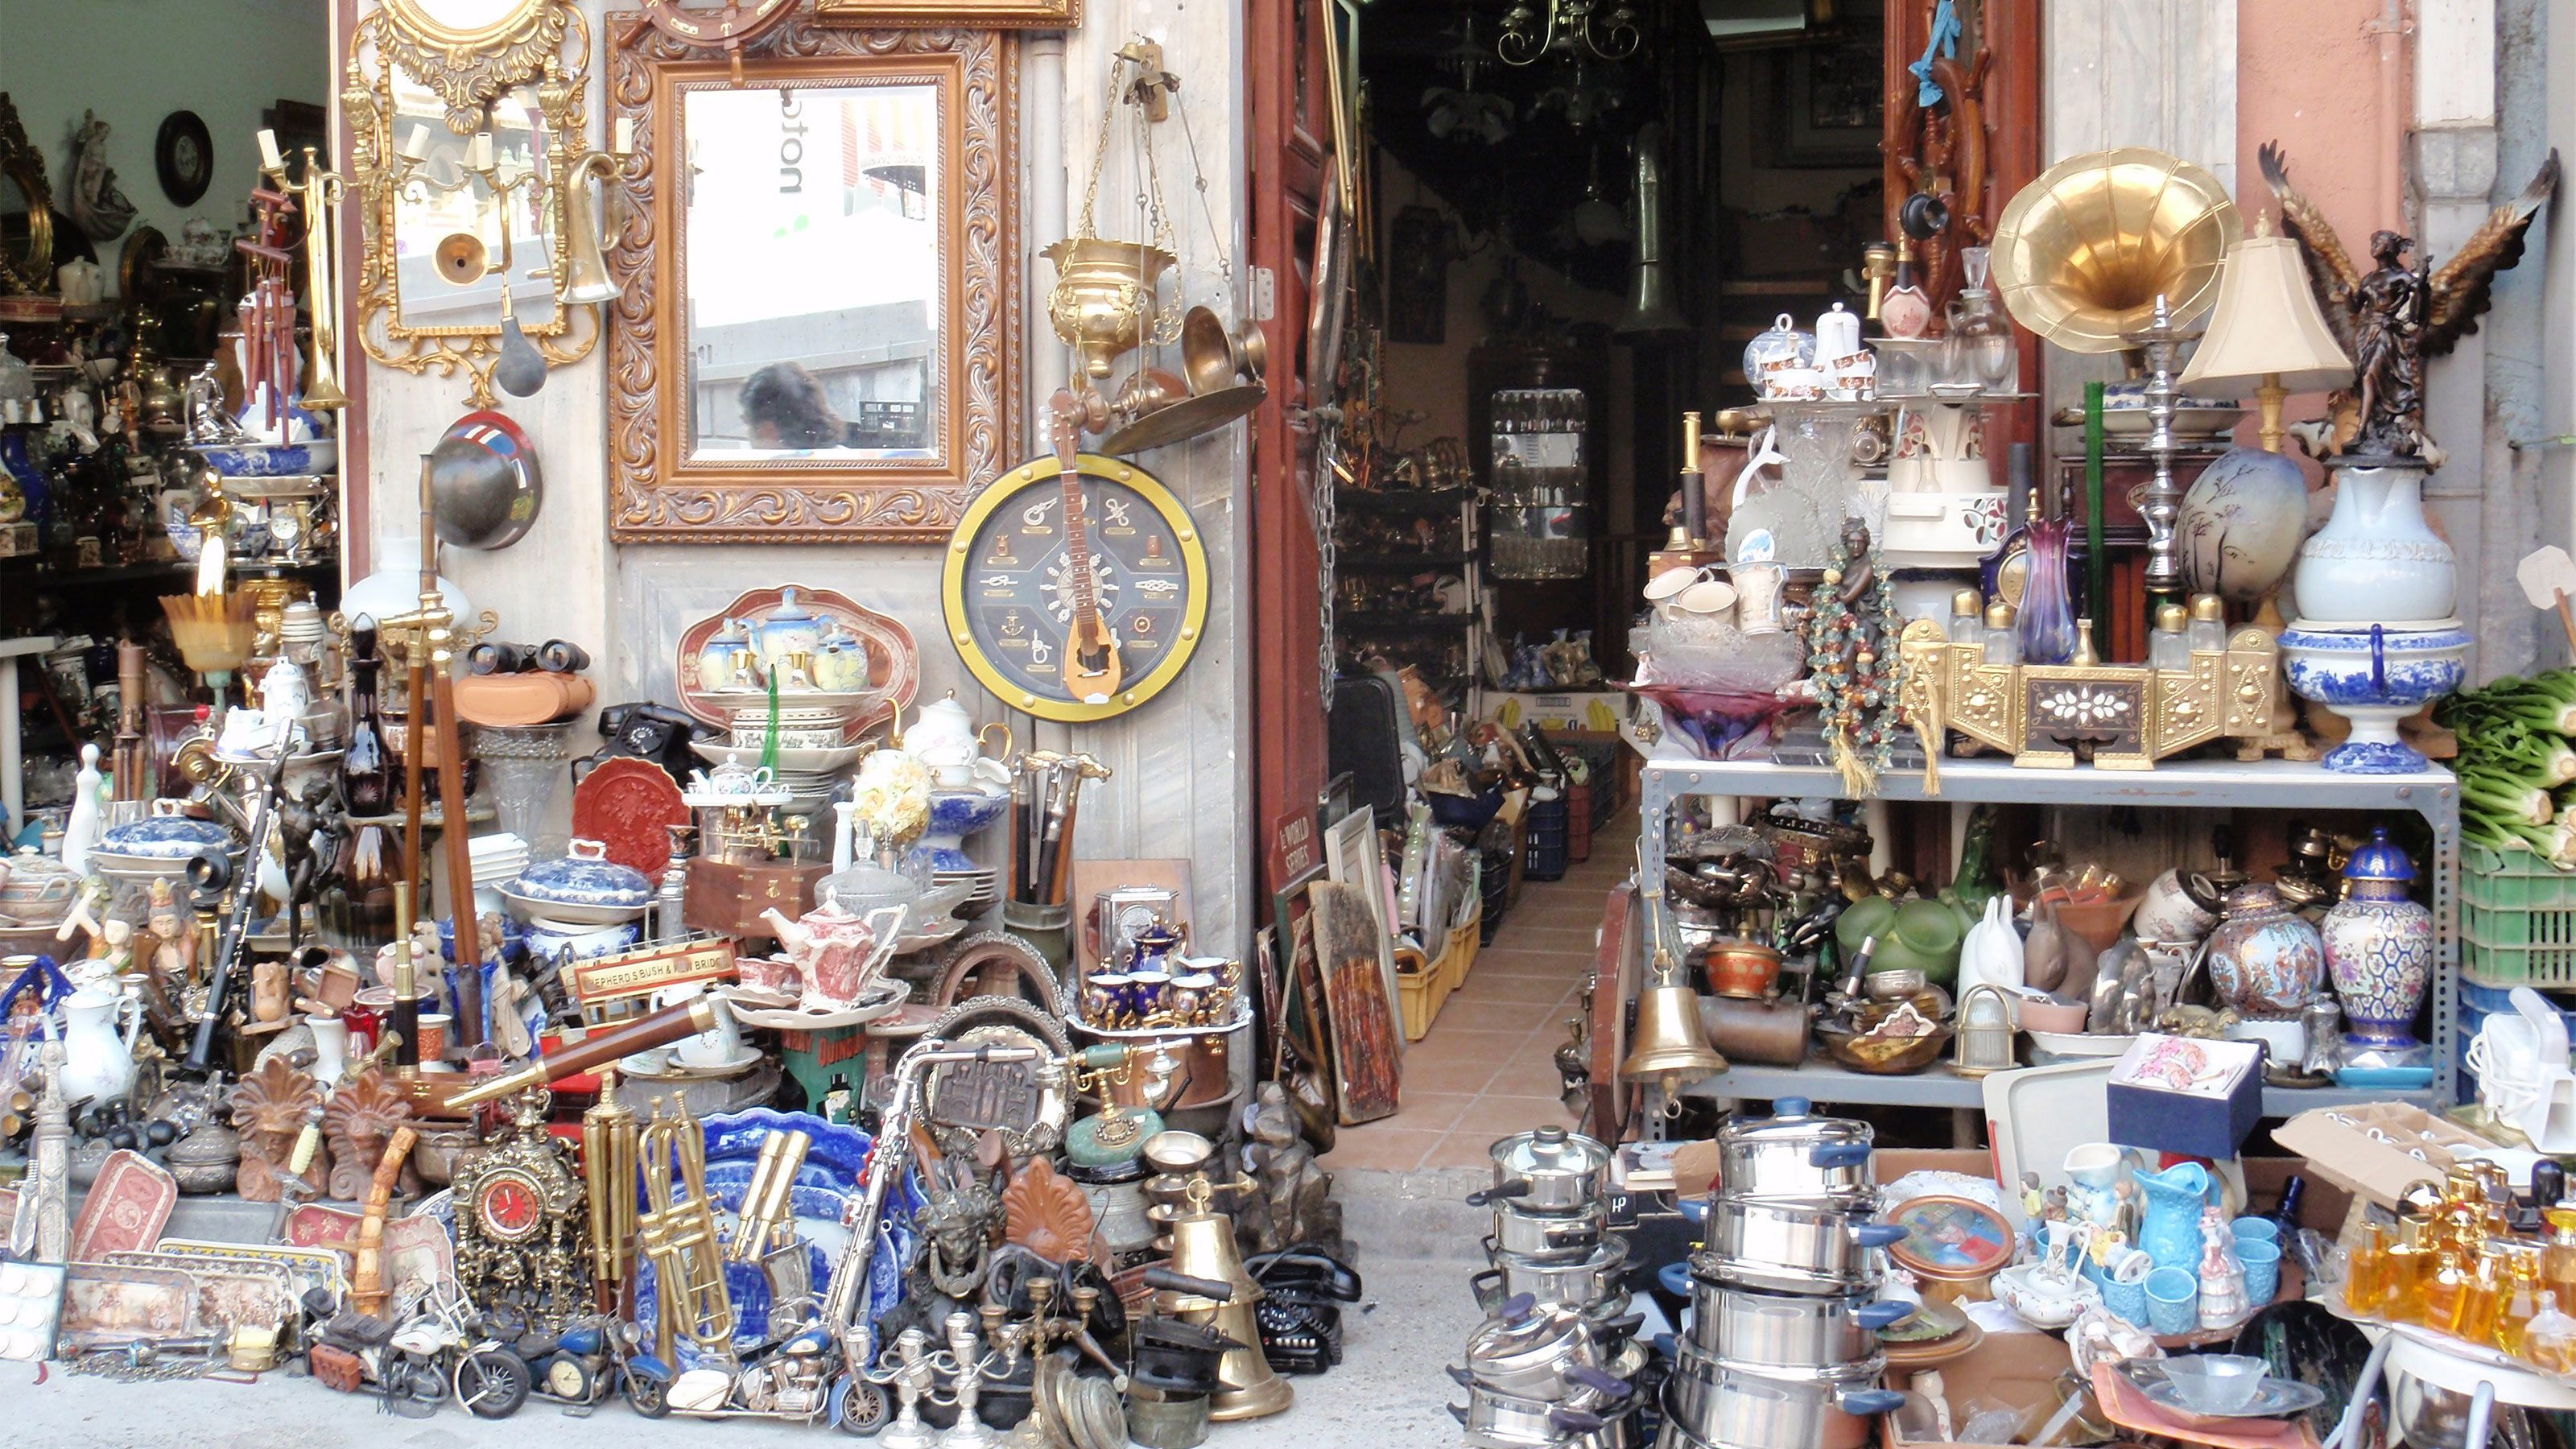 Antiques for sale at a shop in Athens